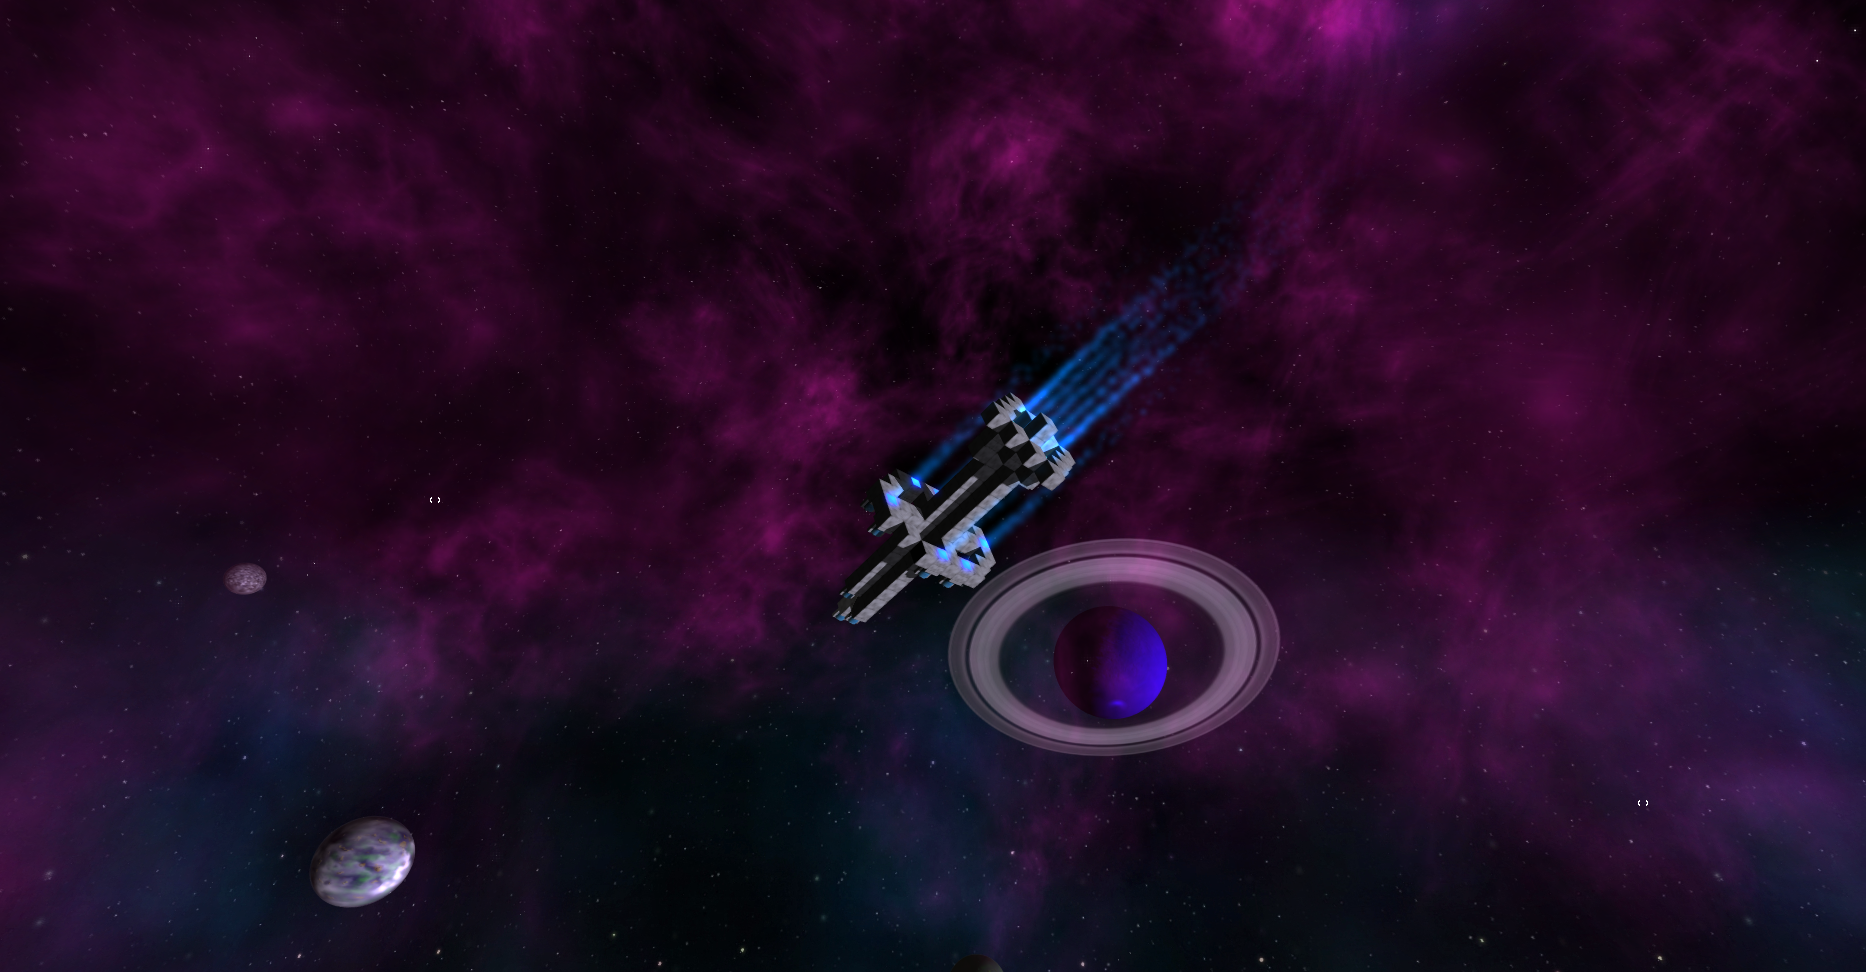 Prometheus flyby of a purple nebula